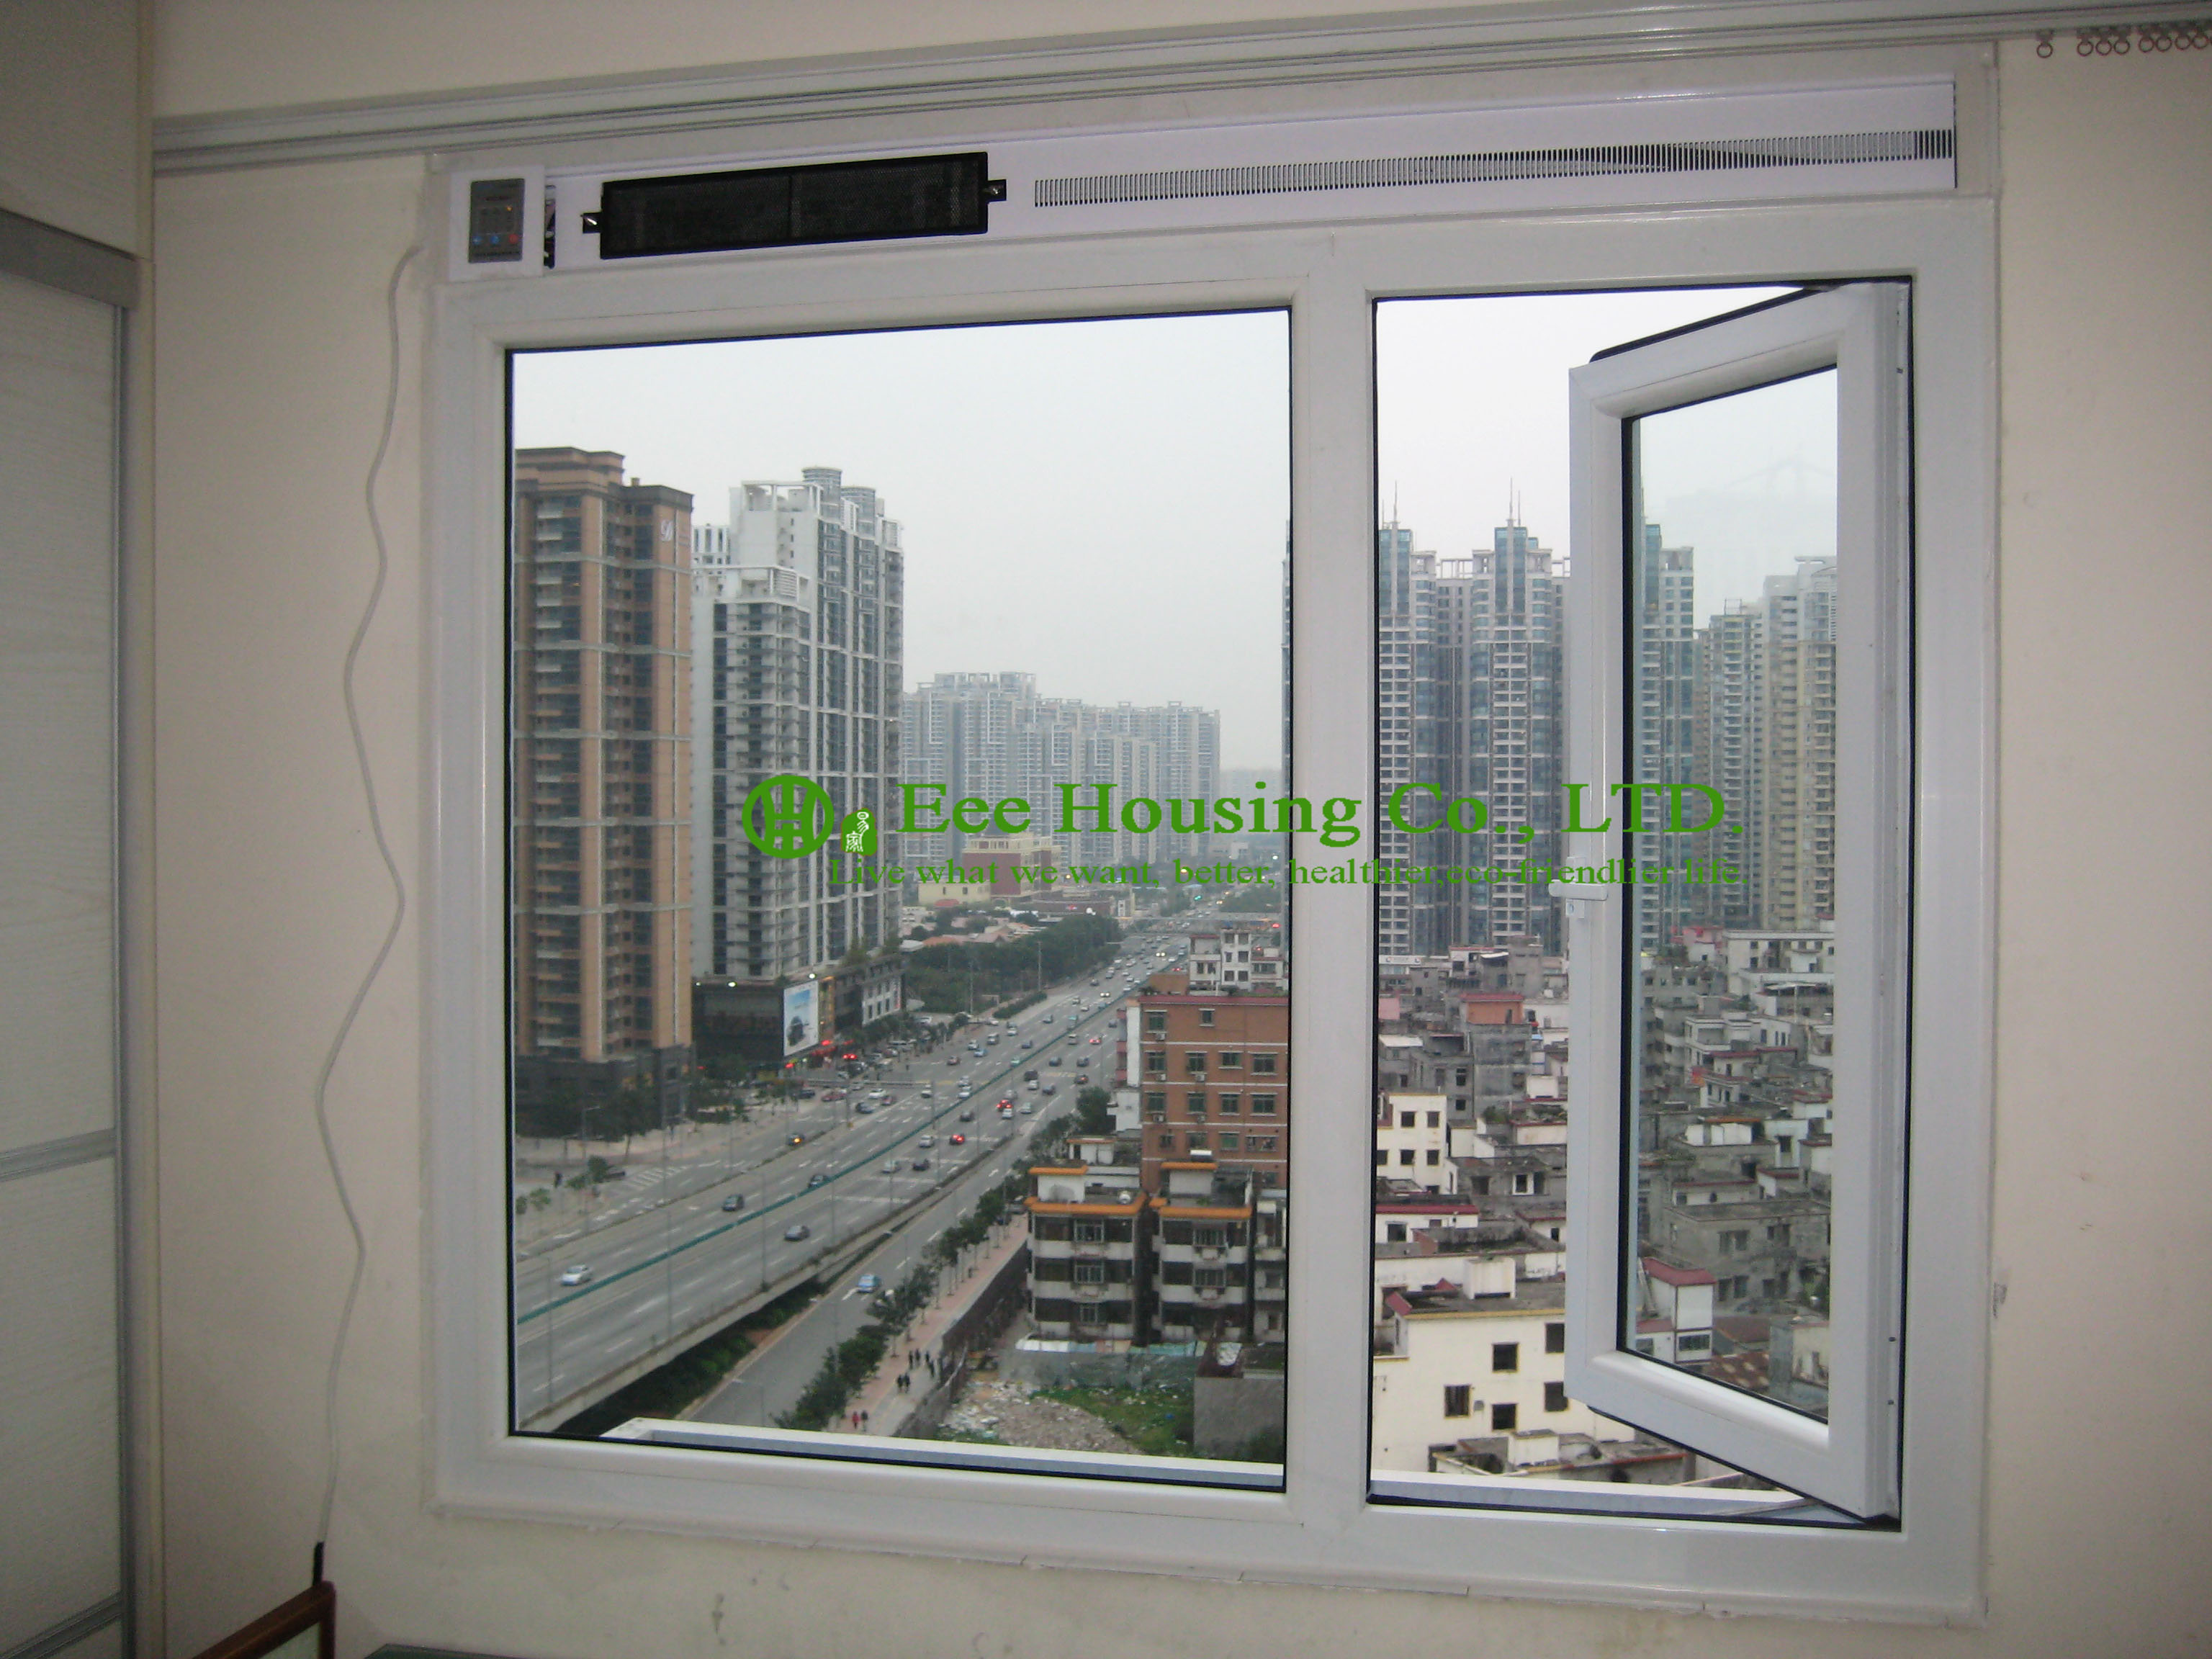 Soundproof windows - Soundproof Windows 19